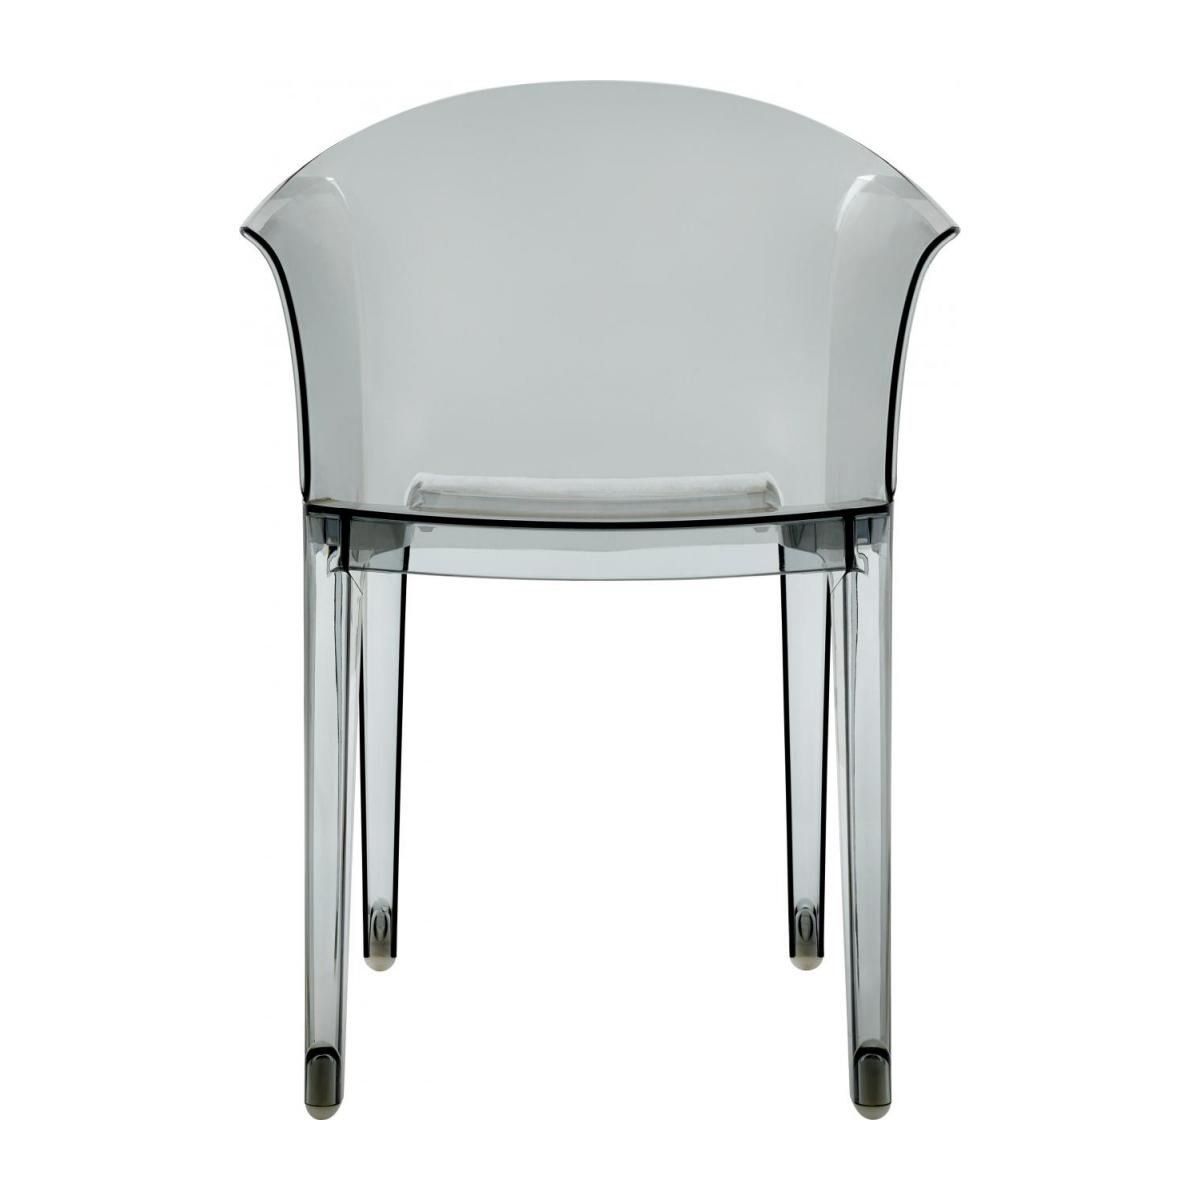 Smokey grey armchair in polycarbonate n°3